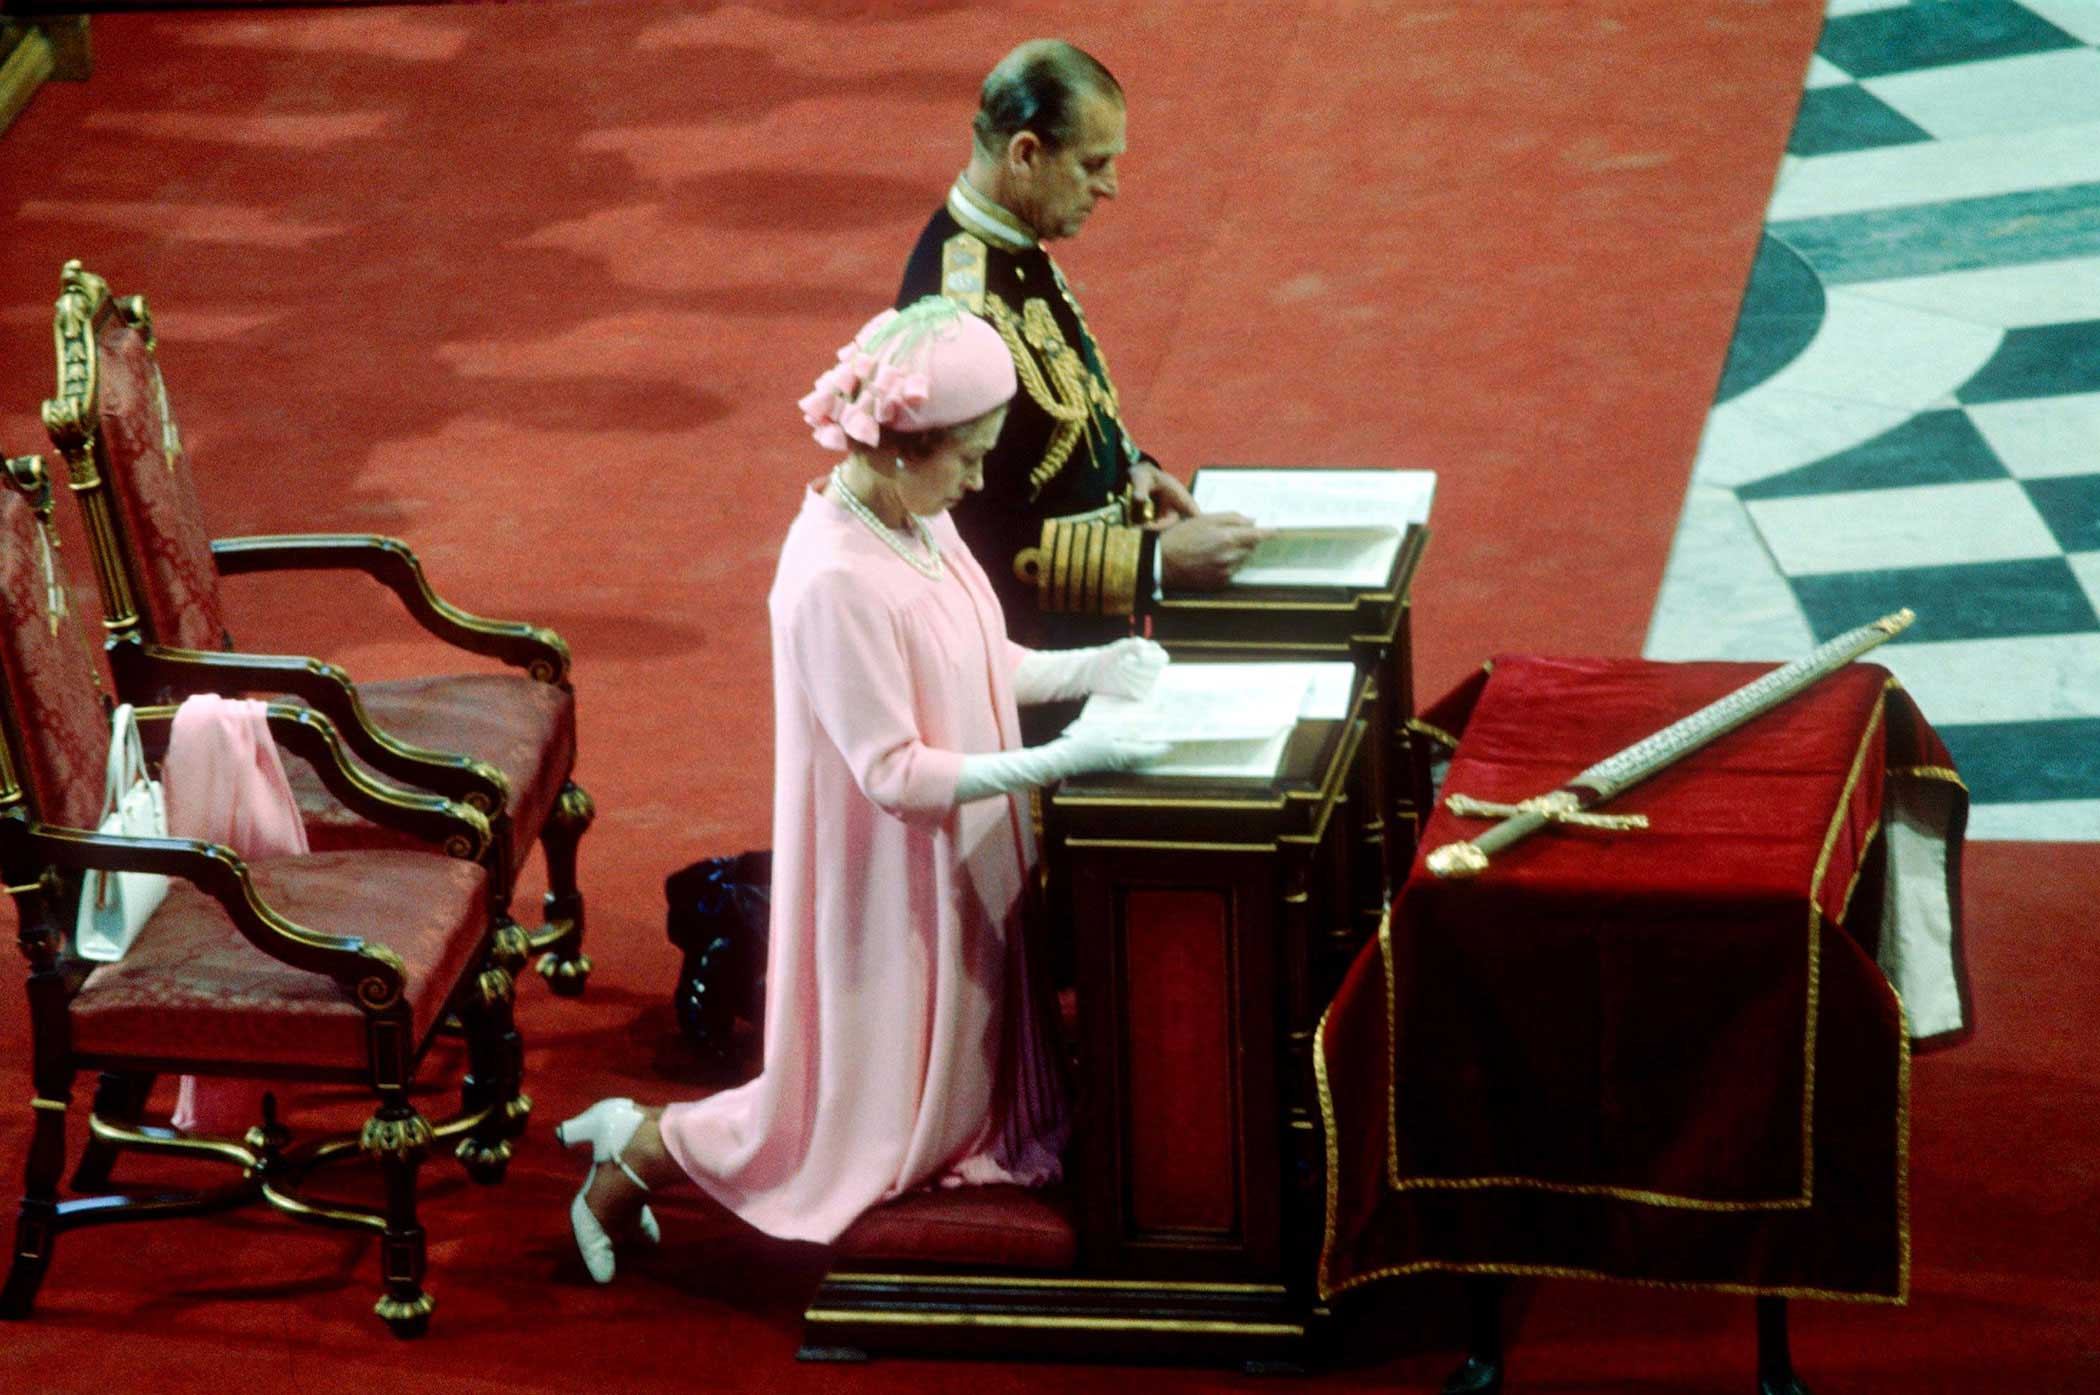 Queen Elizabeth II and Prince Philip kneel during a ceremony for the Queen's Silver Jubilee in 1977. Celebrations throughout Britain and the Commonwealth reaffirmed the monarch's popularity among the public.